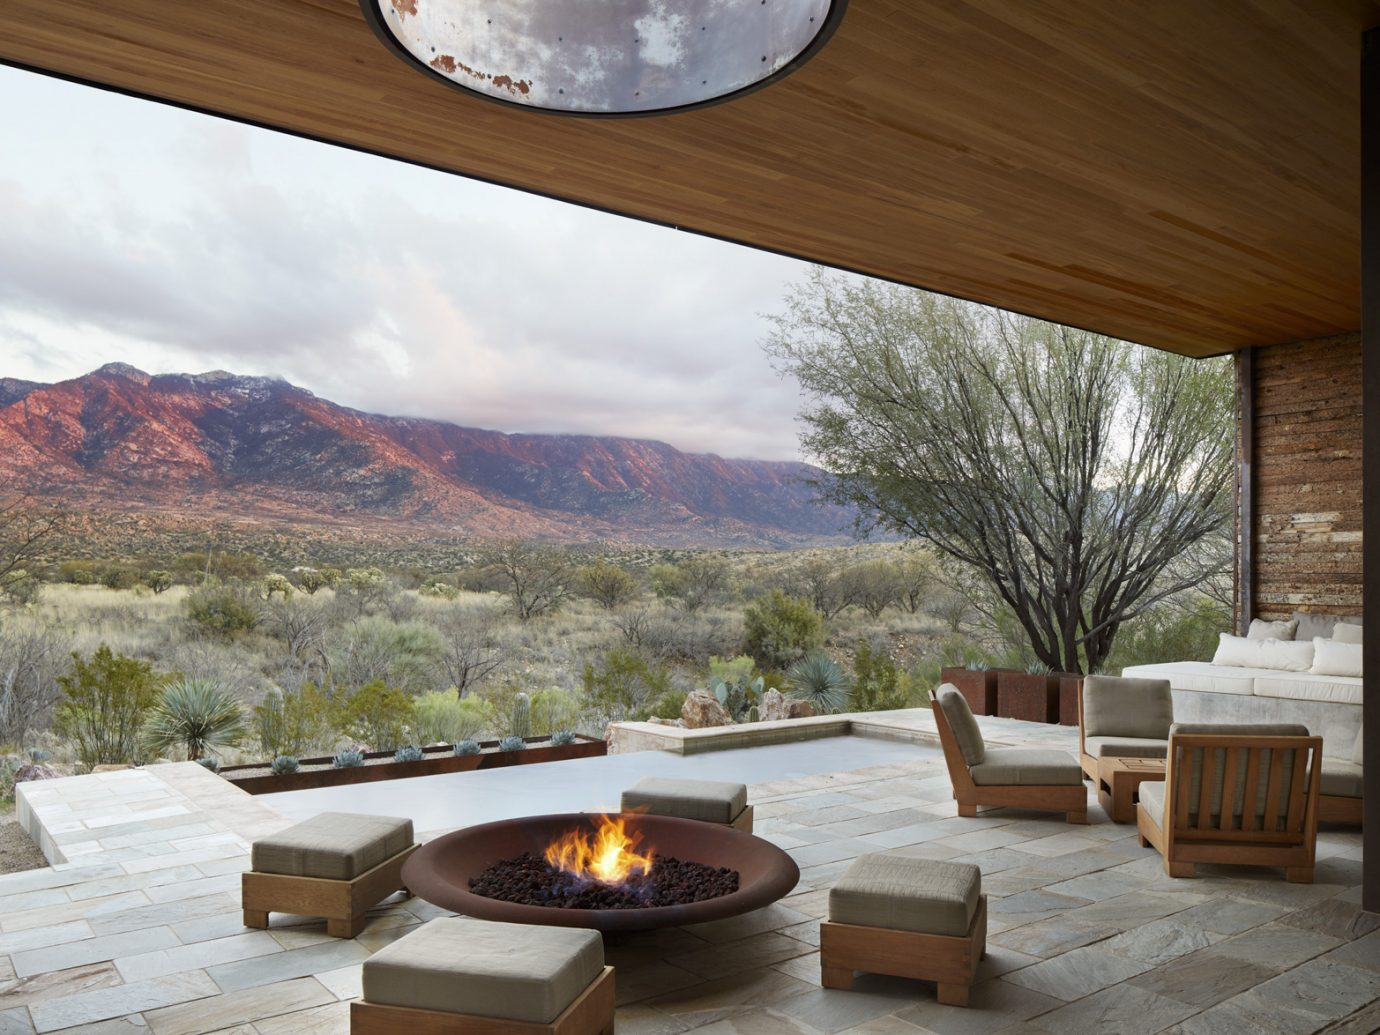 outdoor patio and pool at Miraval Resort and Spa, Tucson, AZ